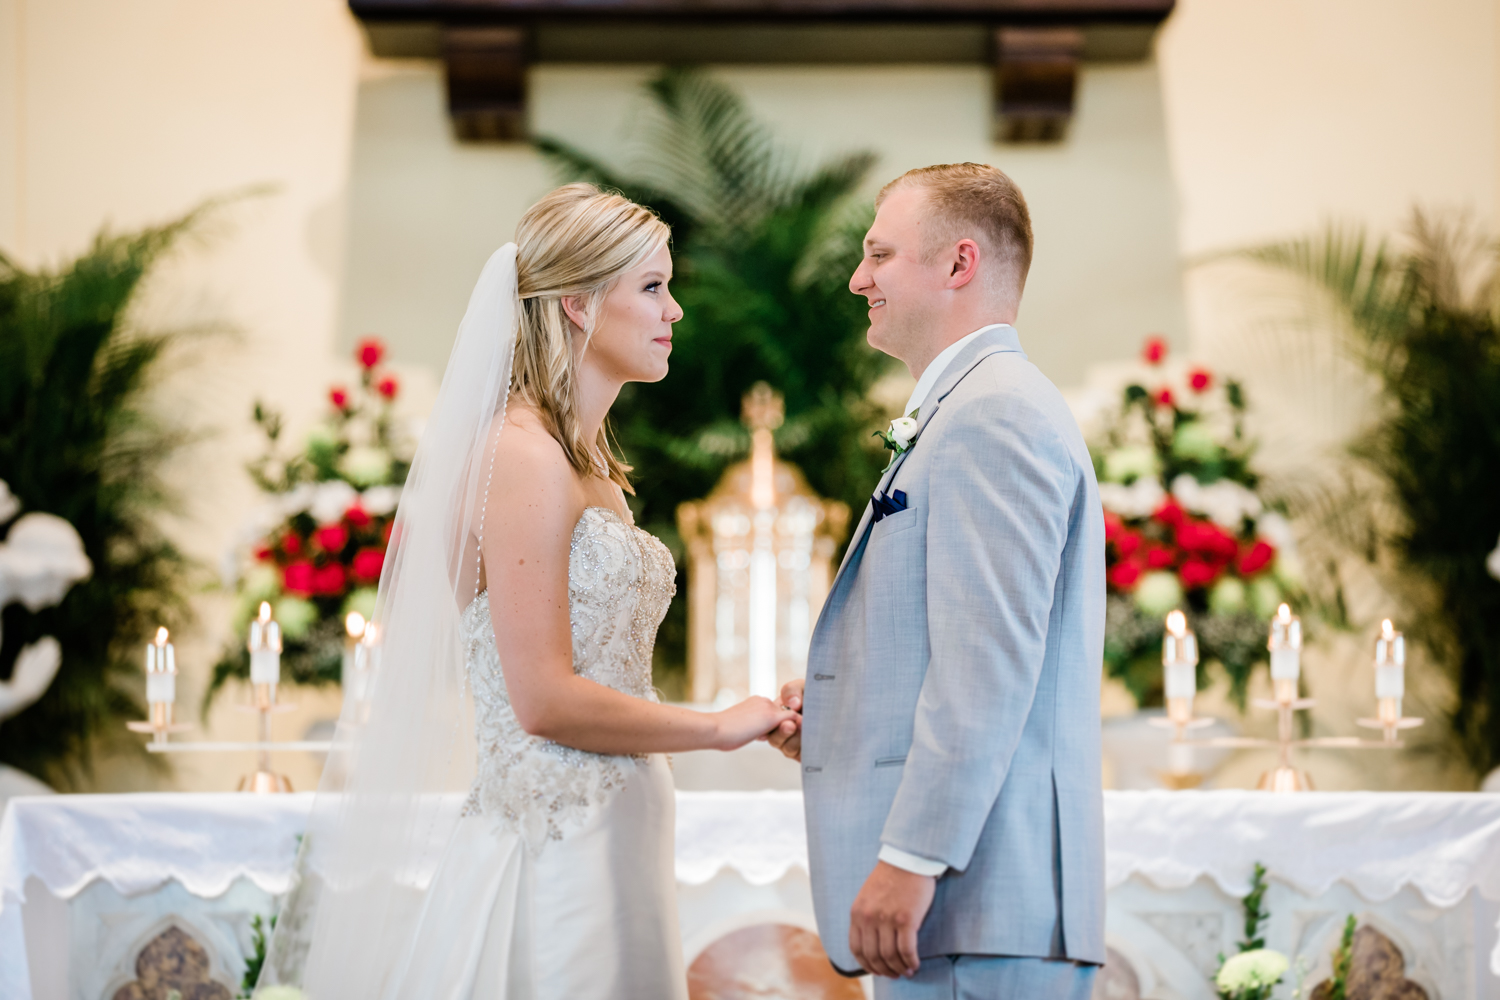 bride and groom stand at the altar together in Westminster, MD - highly recommended wedding photographer near Carroll County, MD